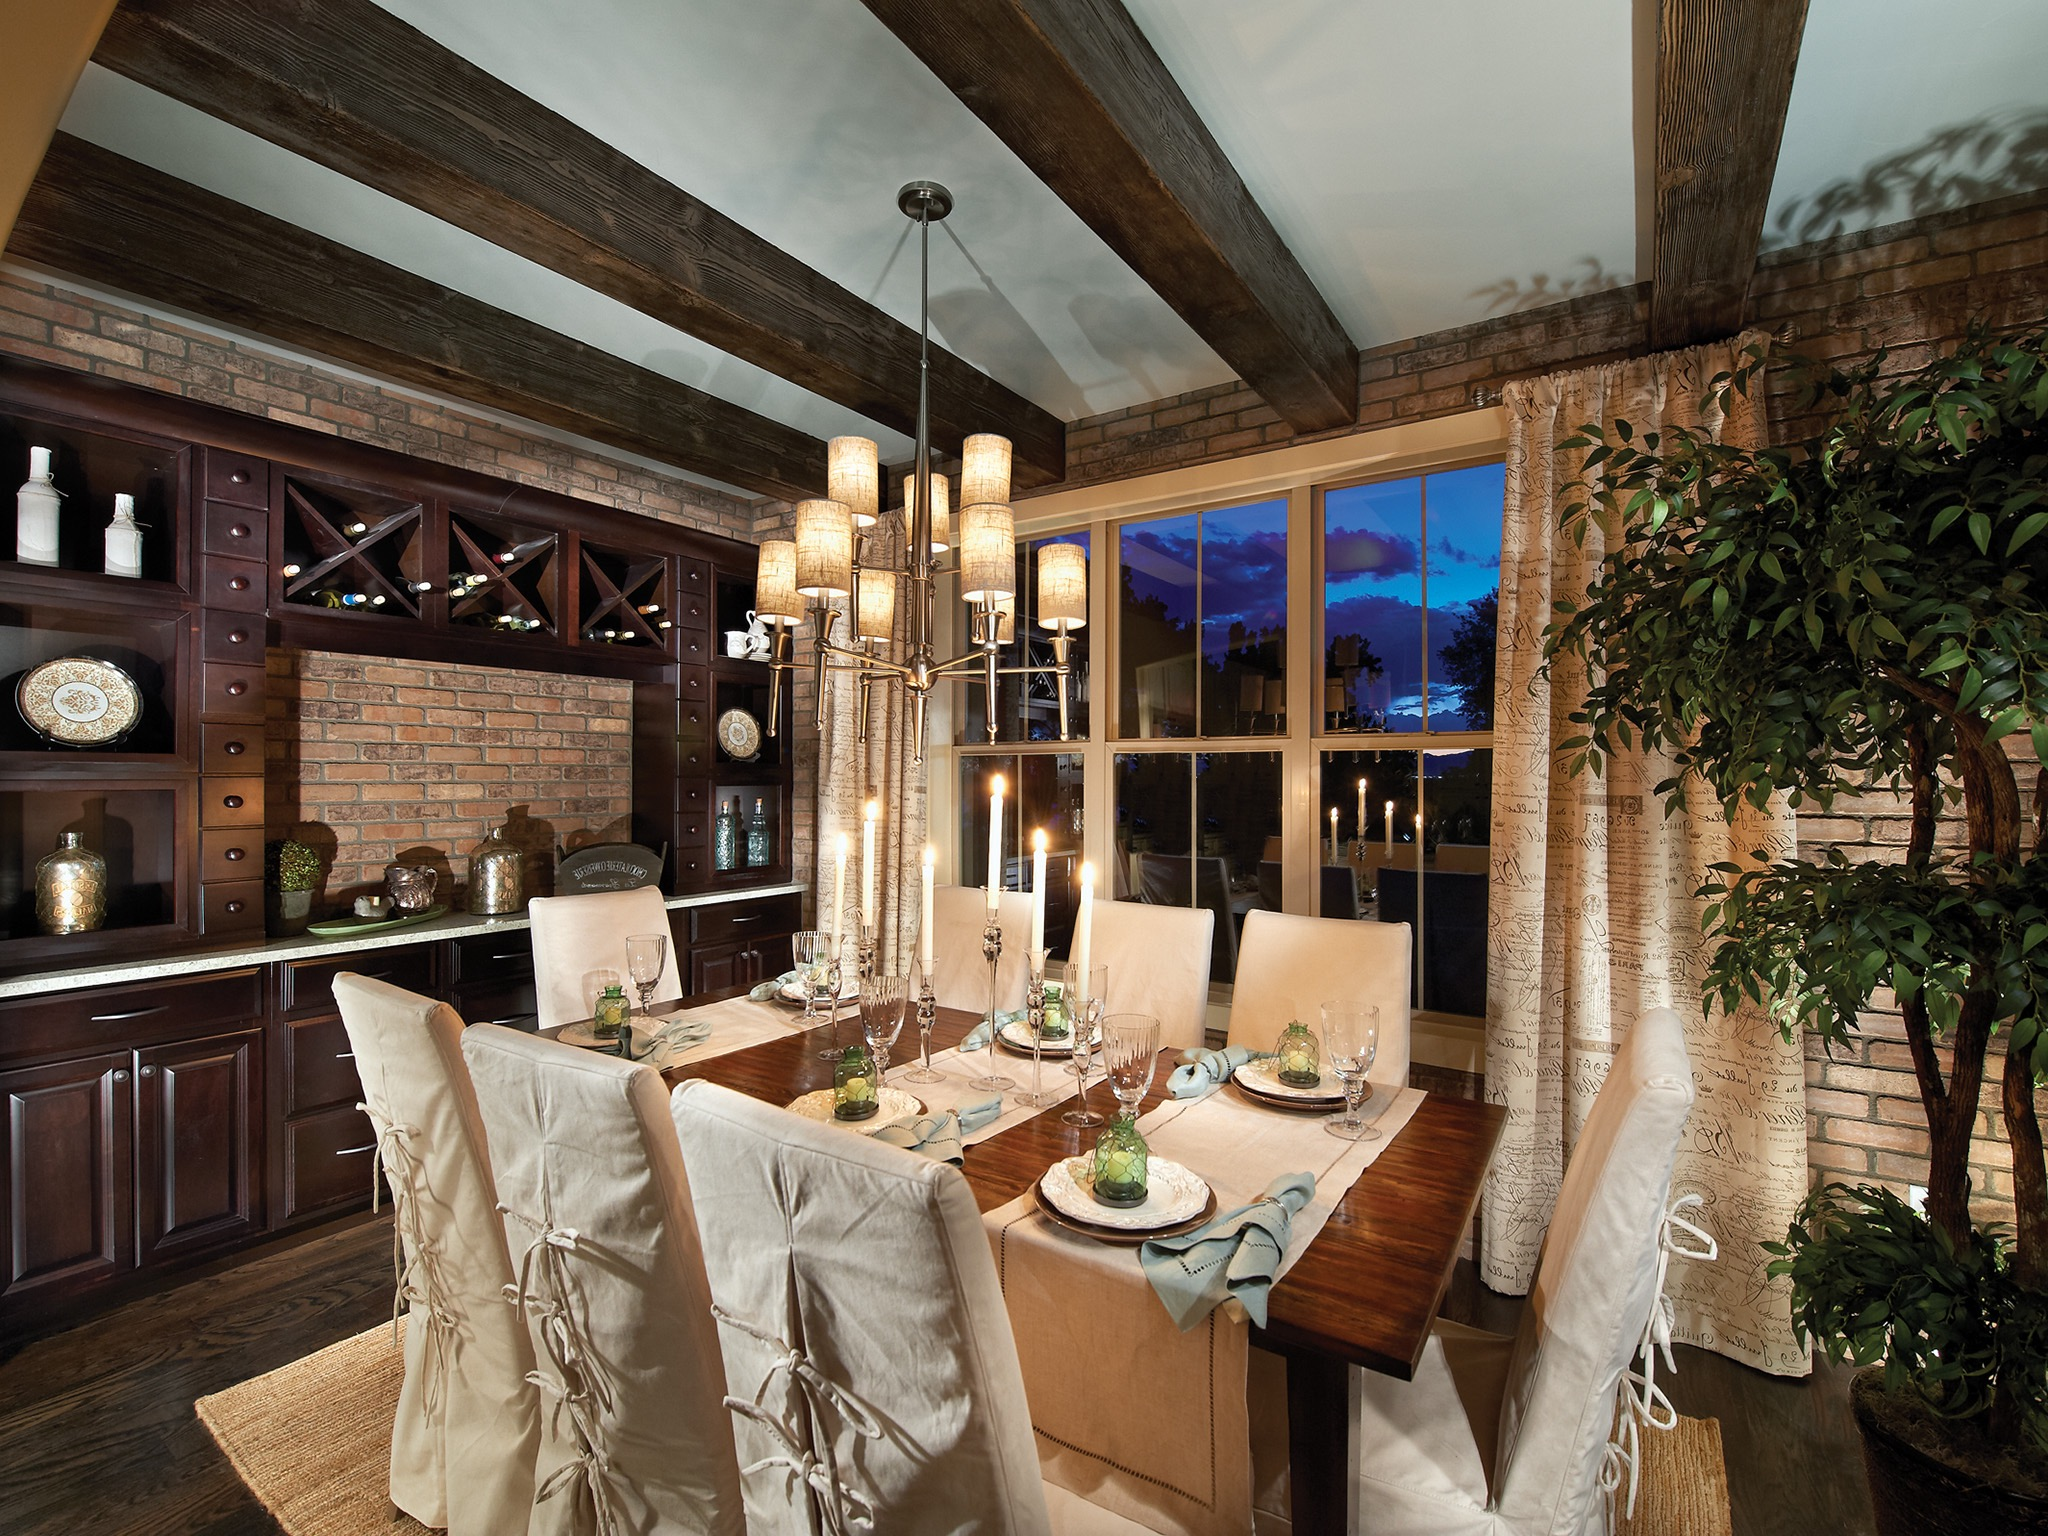 Rustic Yet Elegant Dining Room With Brick Wall Decor (Image 25 of 36)